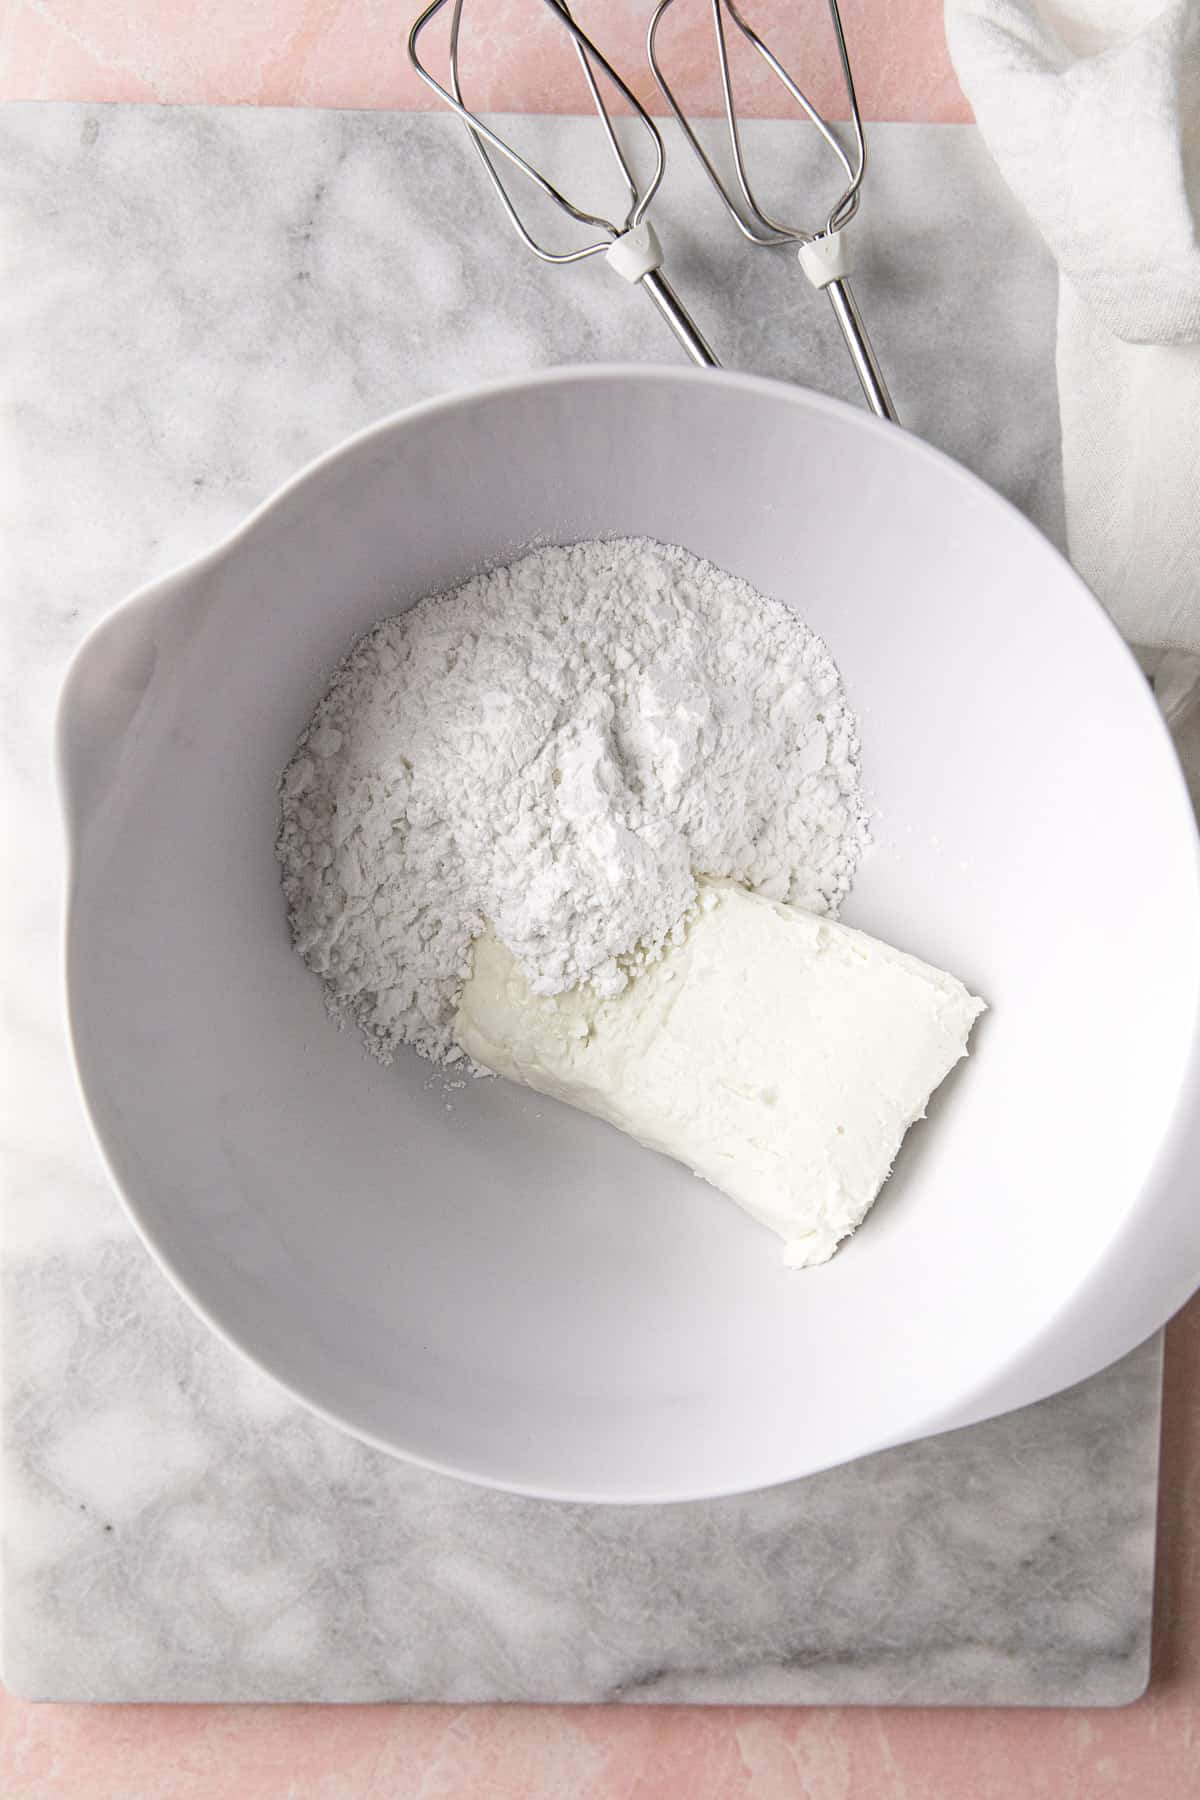 Cream cheese and powdered sugar in a bowl.